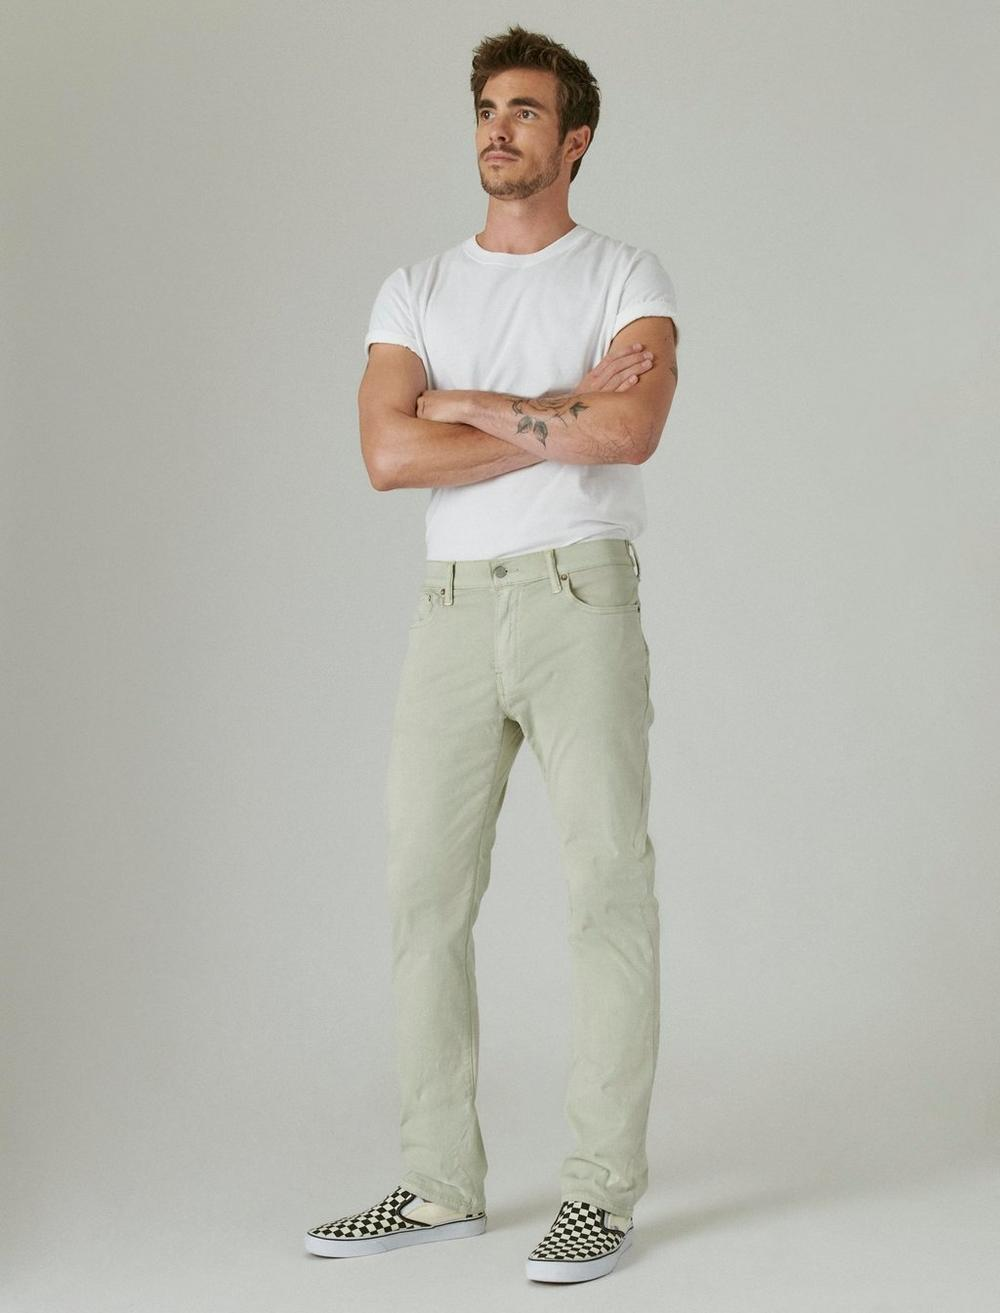 410 ATHLETIC STRAIGHT SATEEN STRETCH JEAN, image 2